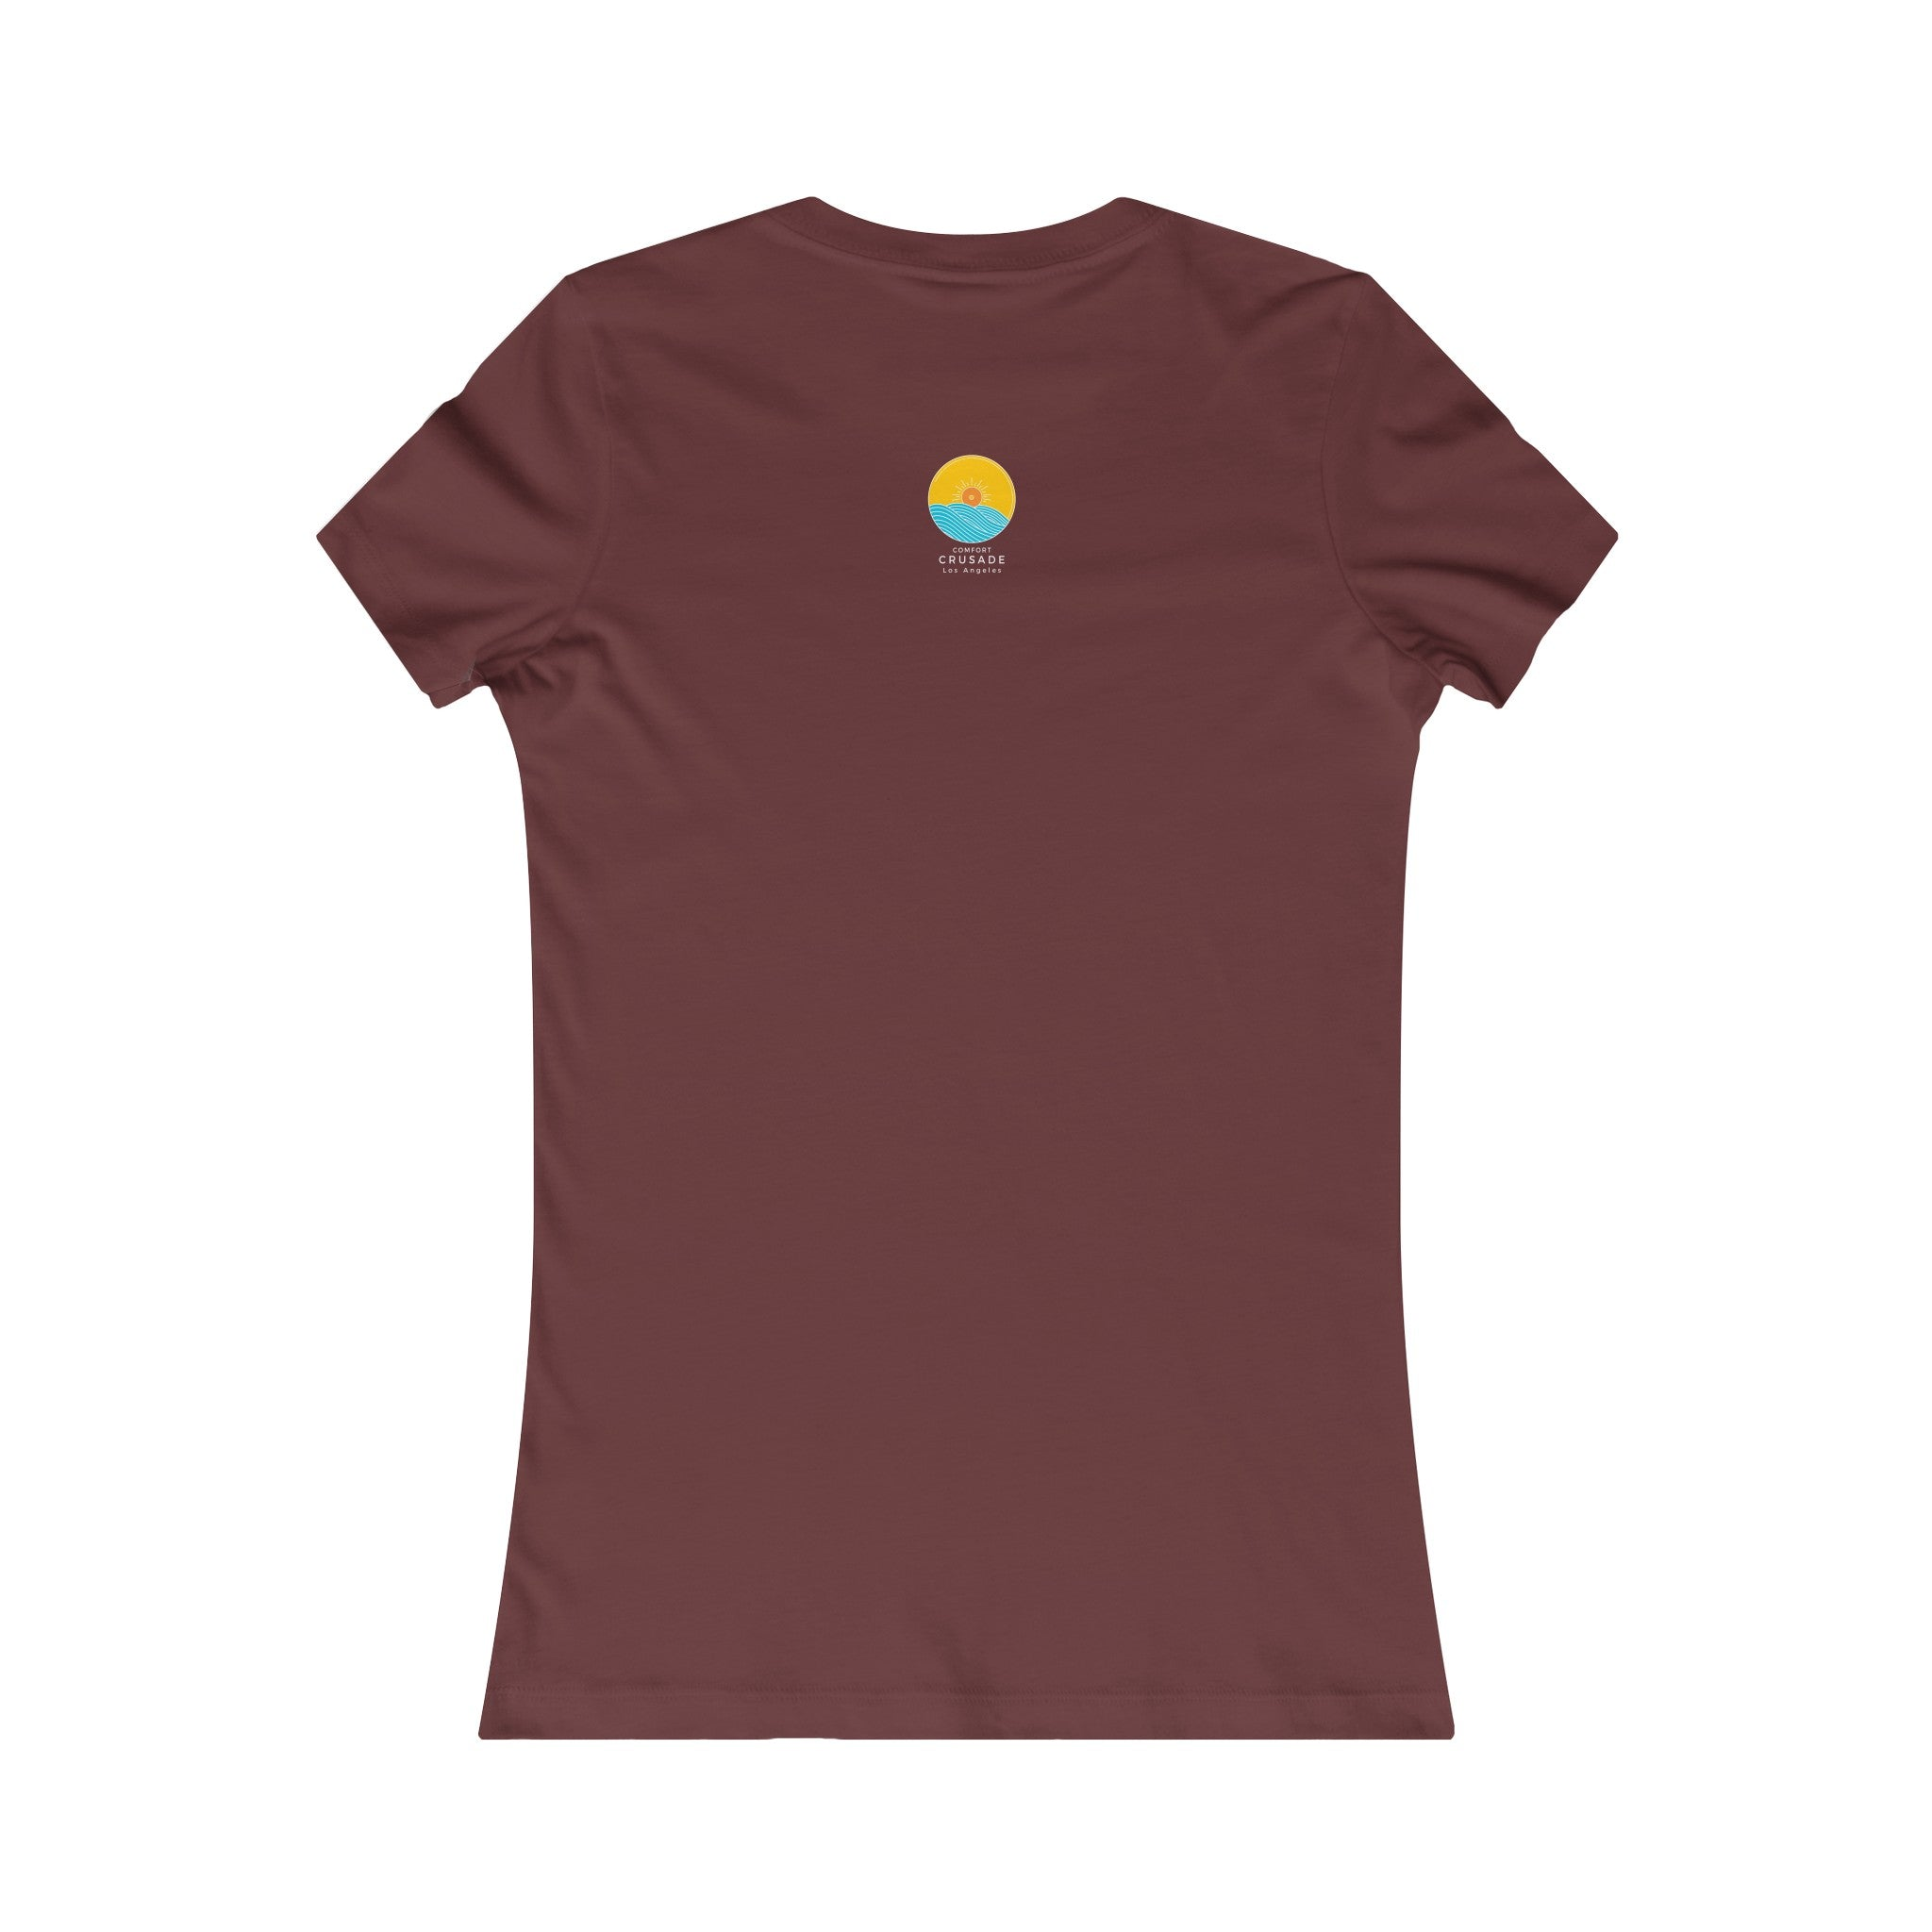 Women's So Comfy Favorite Tee - The Comfort Crusade Shopping Lounge